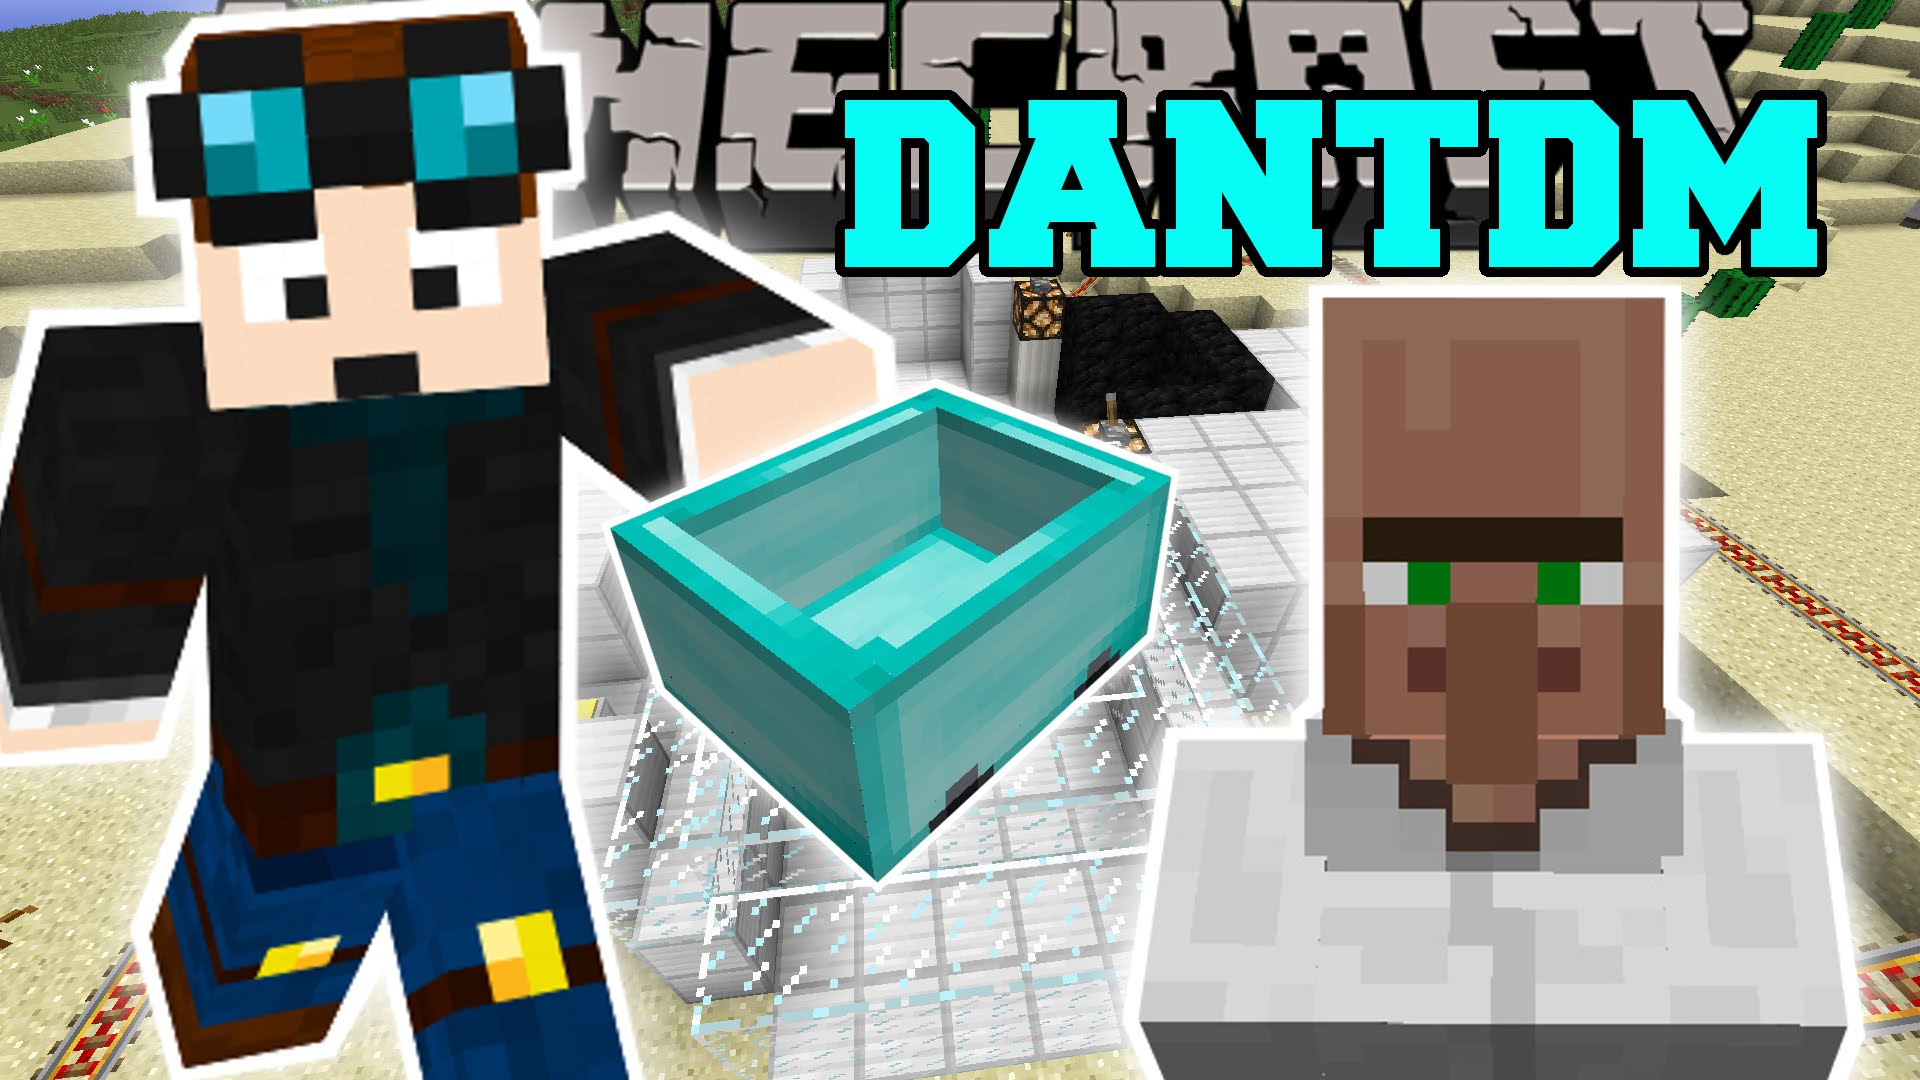 29+] Epic Dan TDM Wallpaper on WallpaperSafari Dantdm Lab Map on